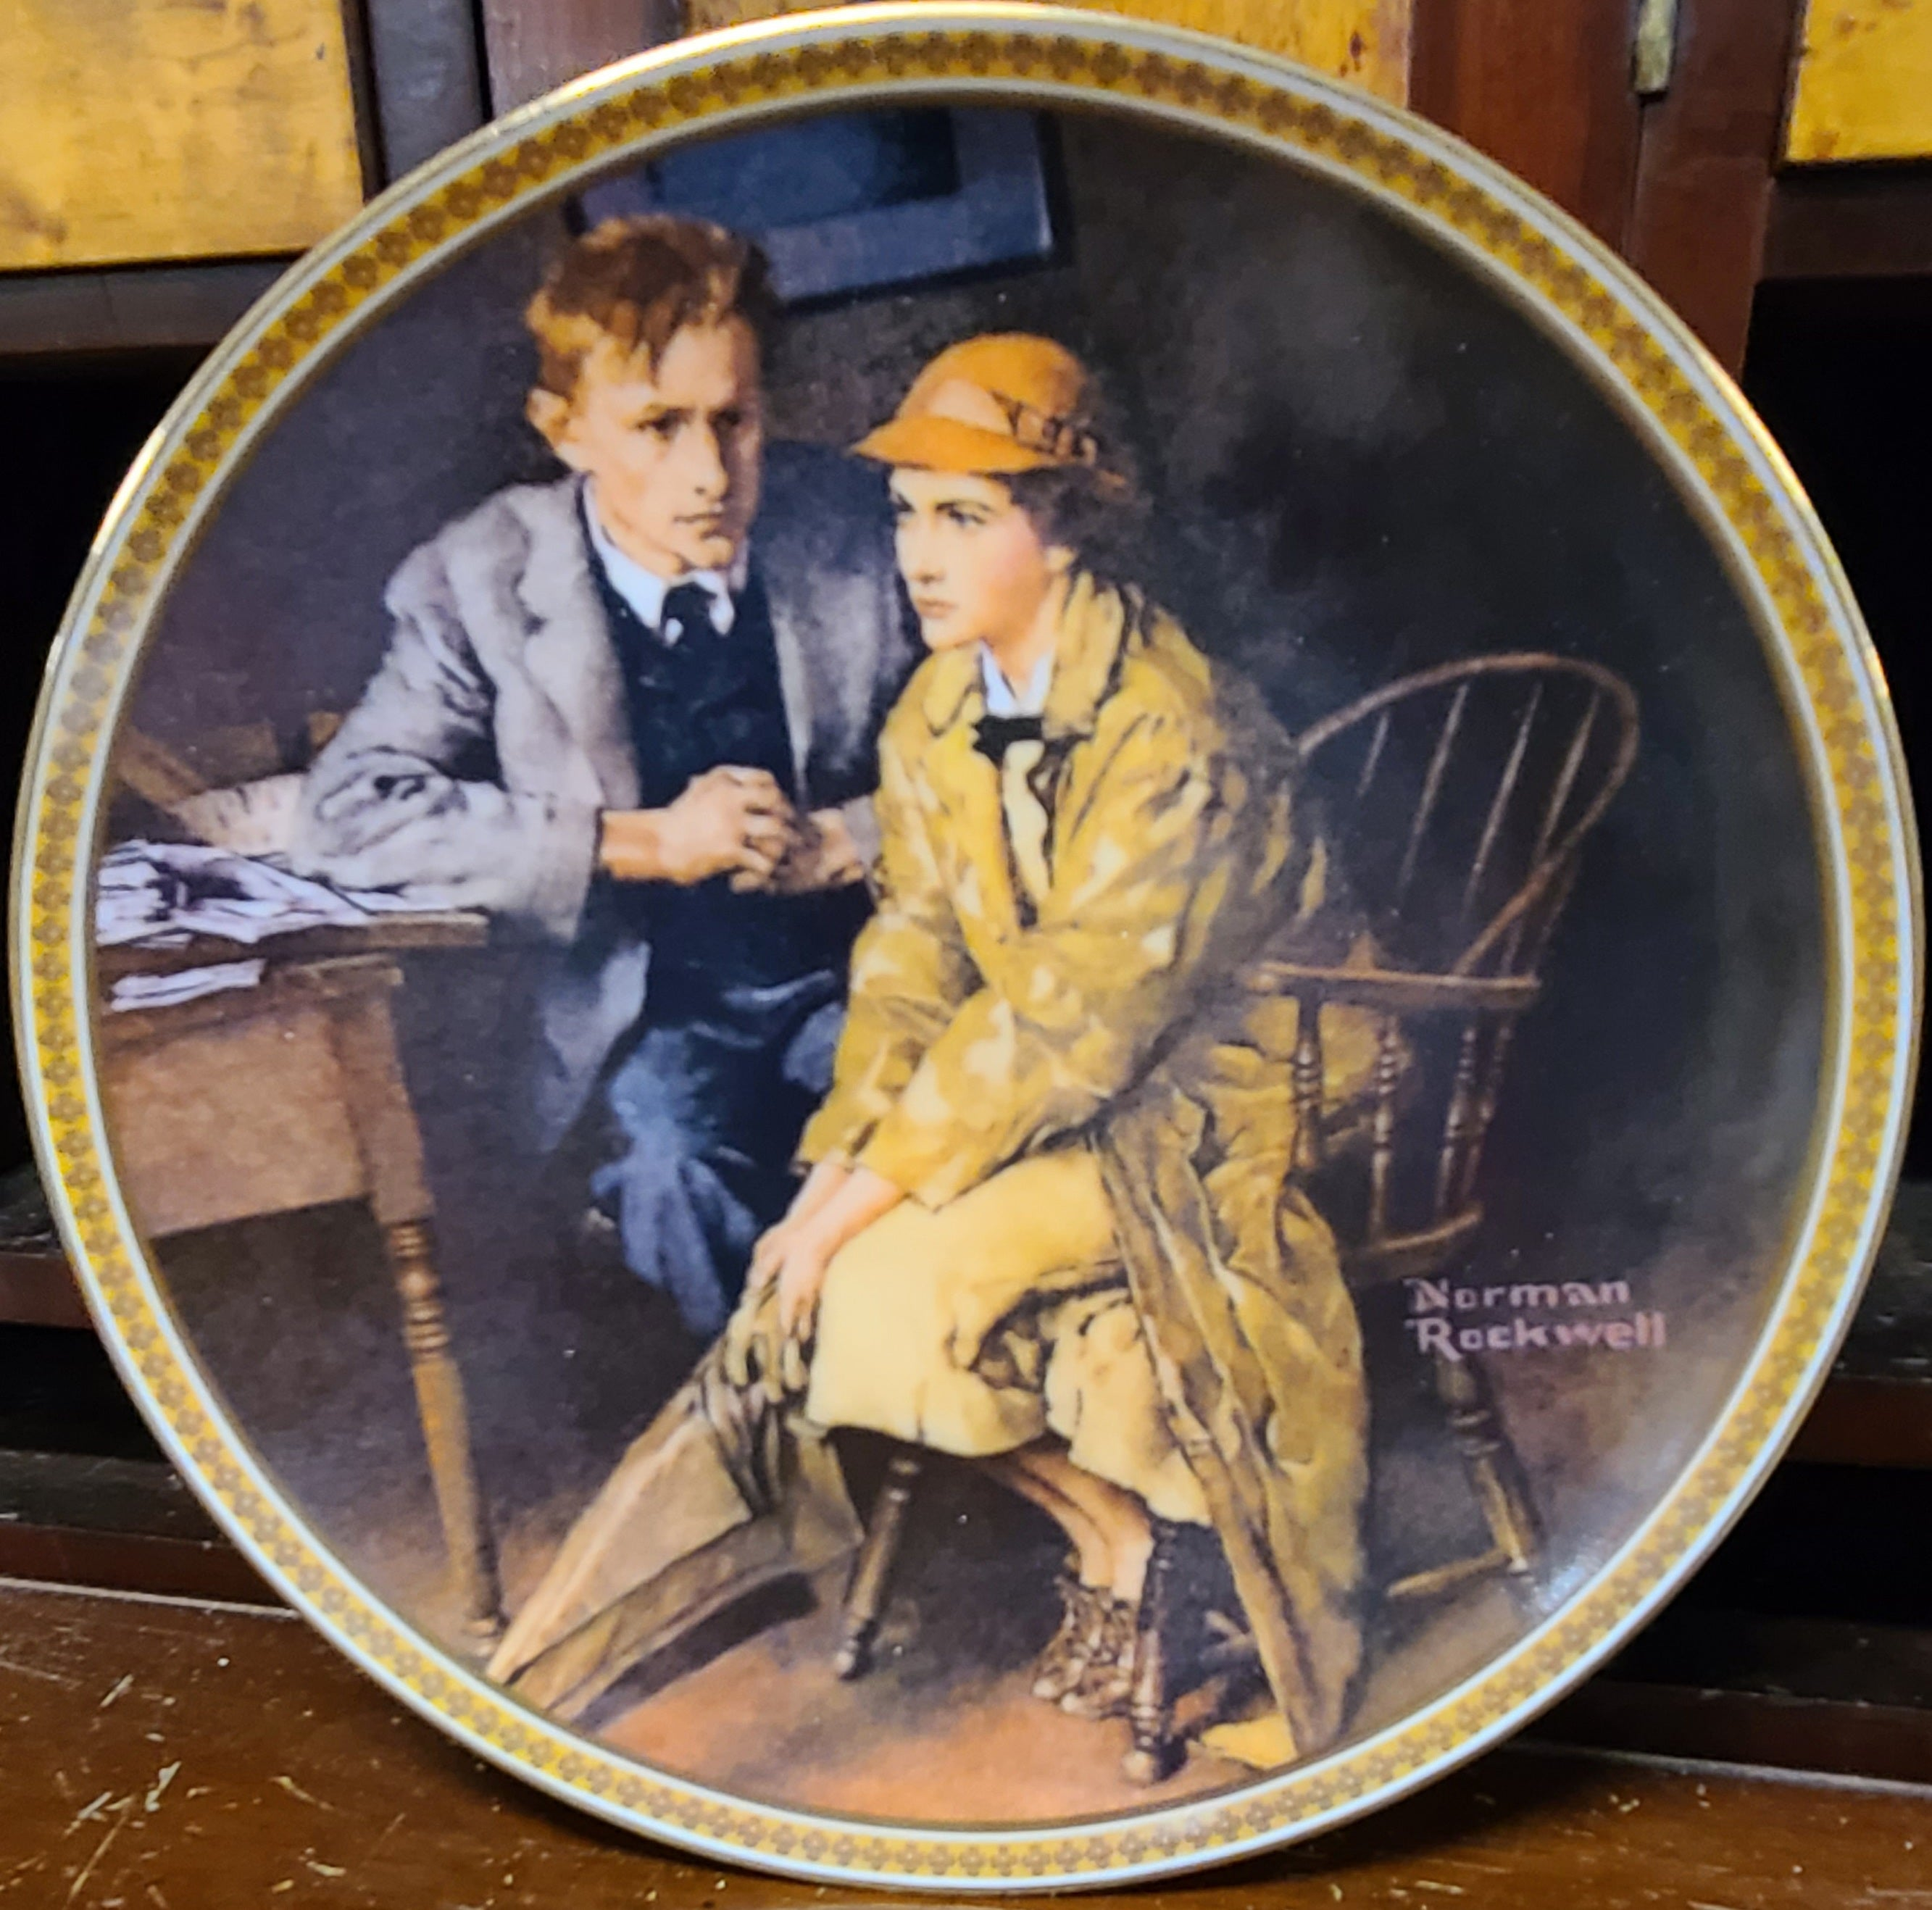 Knowles Rockwell's Rediscovered Women Decorative Plate Collection, Confiding in the Den by Norman Rockwell